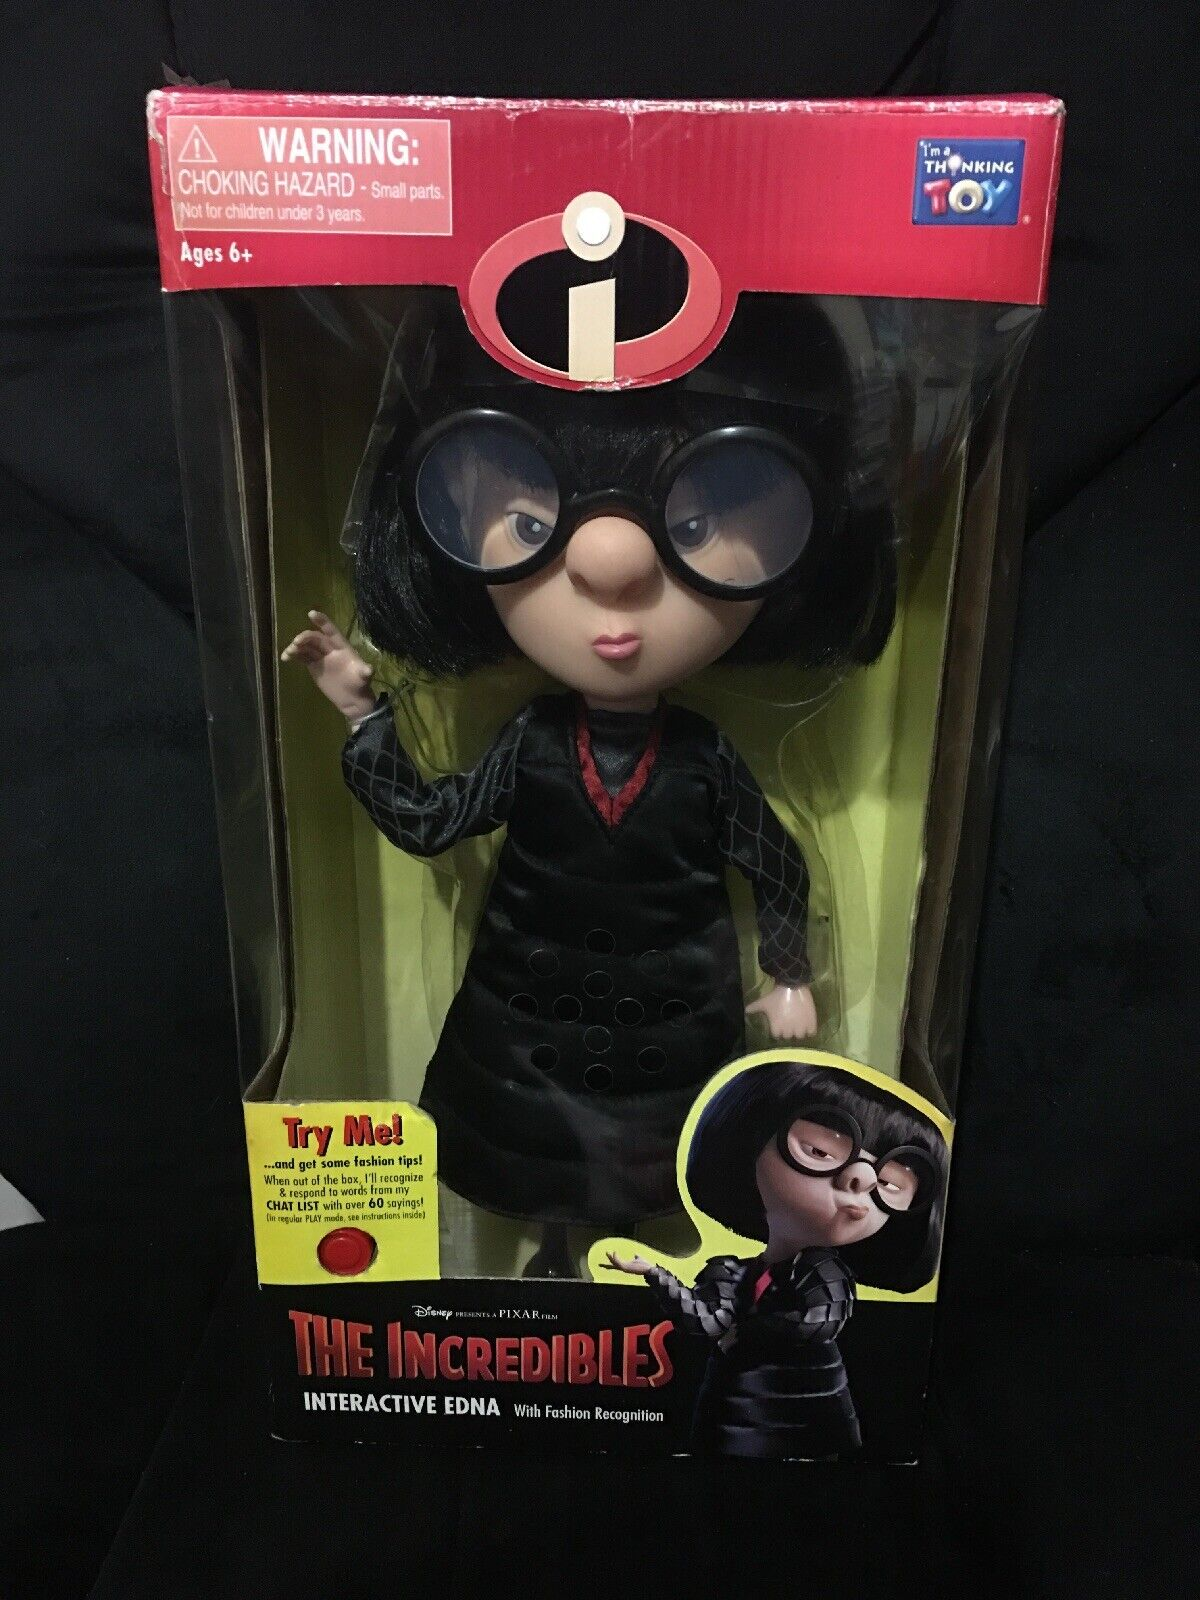 Incredibles Incredibles Incredibles Interactive Edna With Voice Recognition 2003 74f450